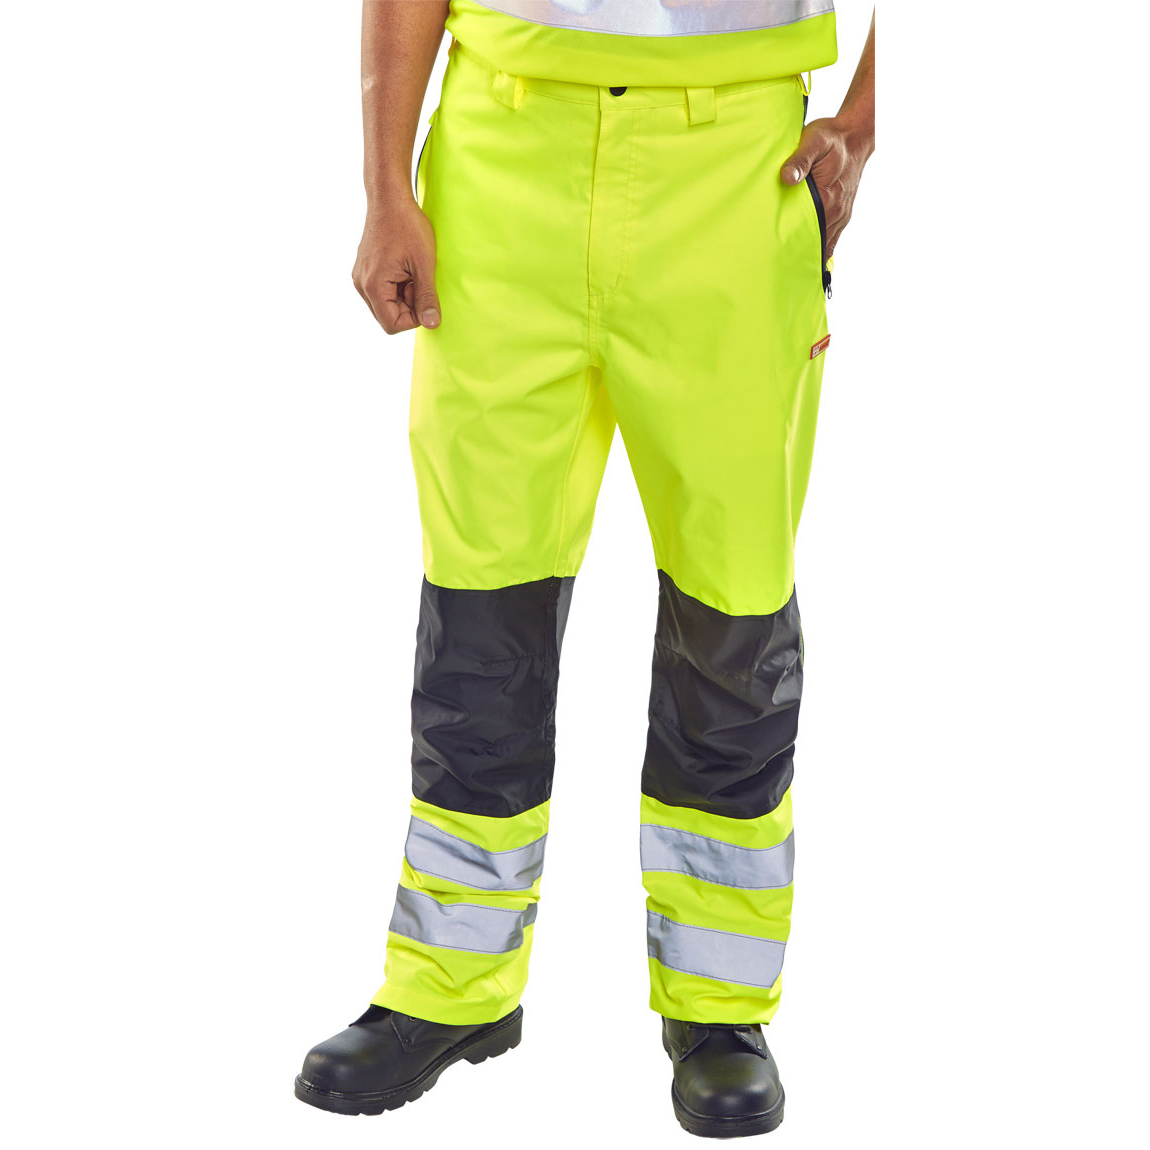 B-Seen Contrast Trousers Hi-Vis Waterproof 3XL Saturn Yellow Ref BD85SY3XL *Up to 3 Day Leadtime*